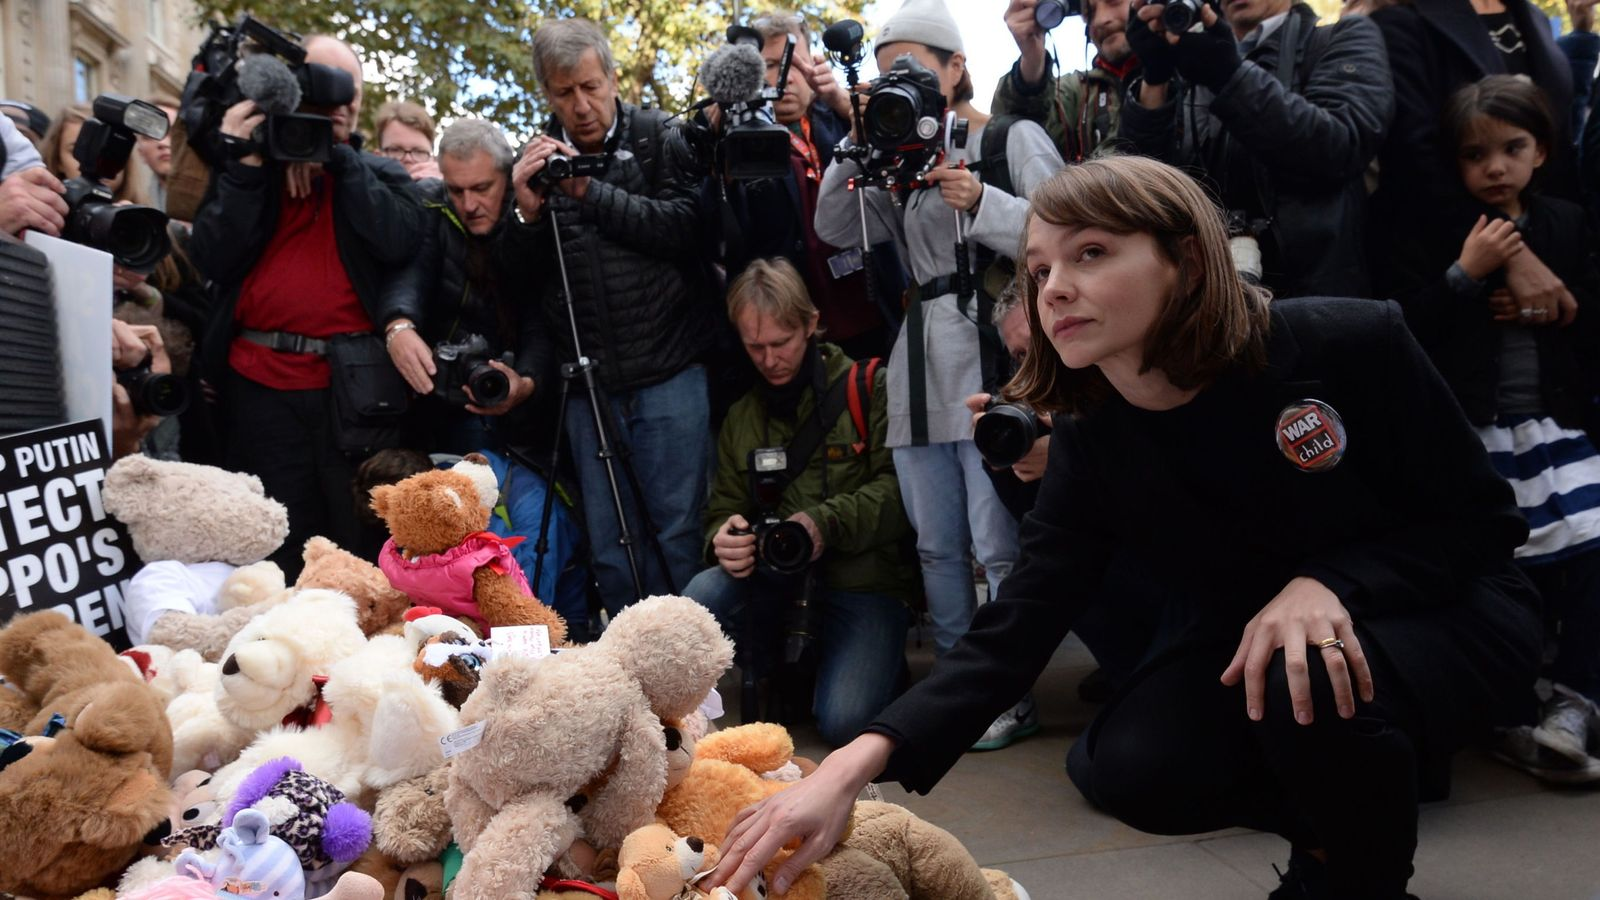 Mulligan brought one of her daughter's teddys to add to the protest